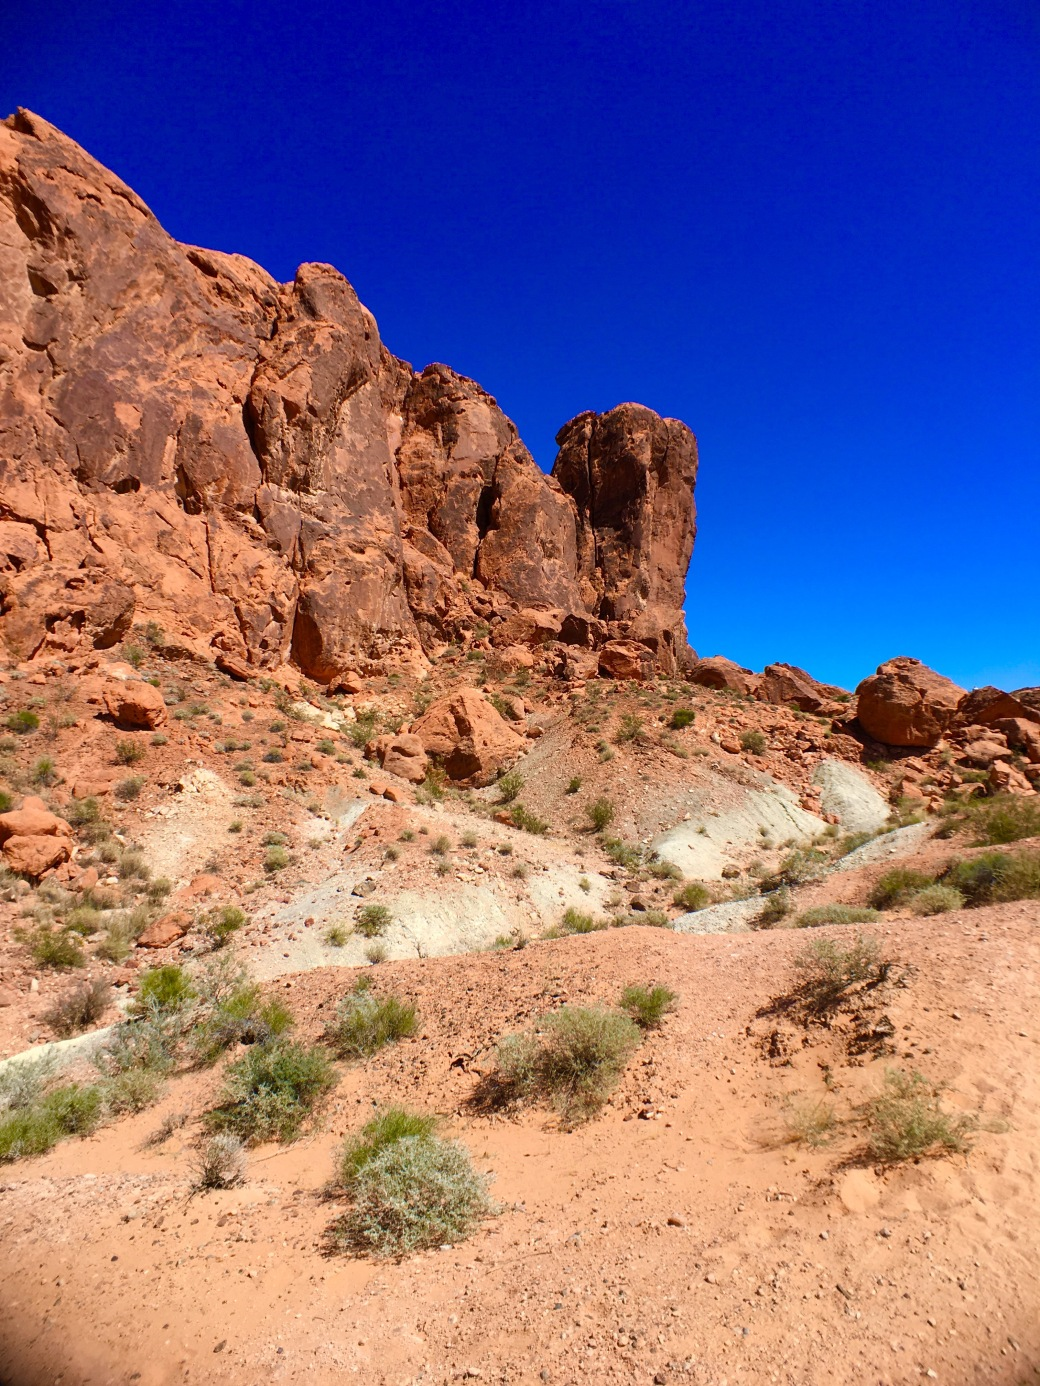 Red rock formation and blue sky in Valley of Fire State Park